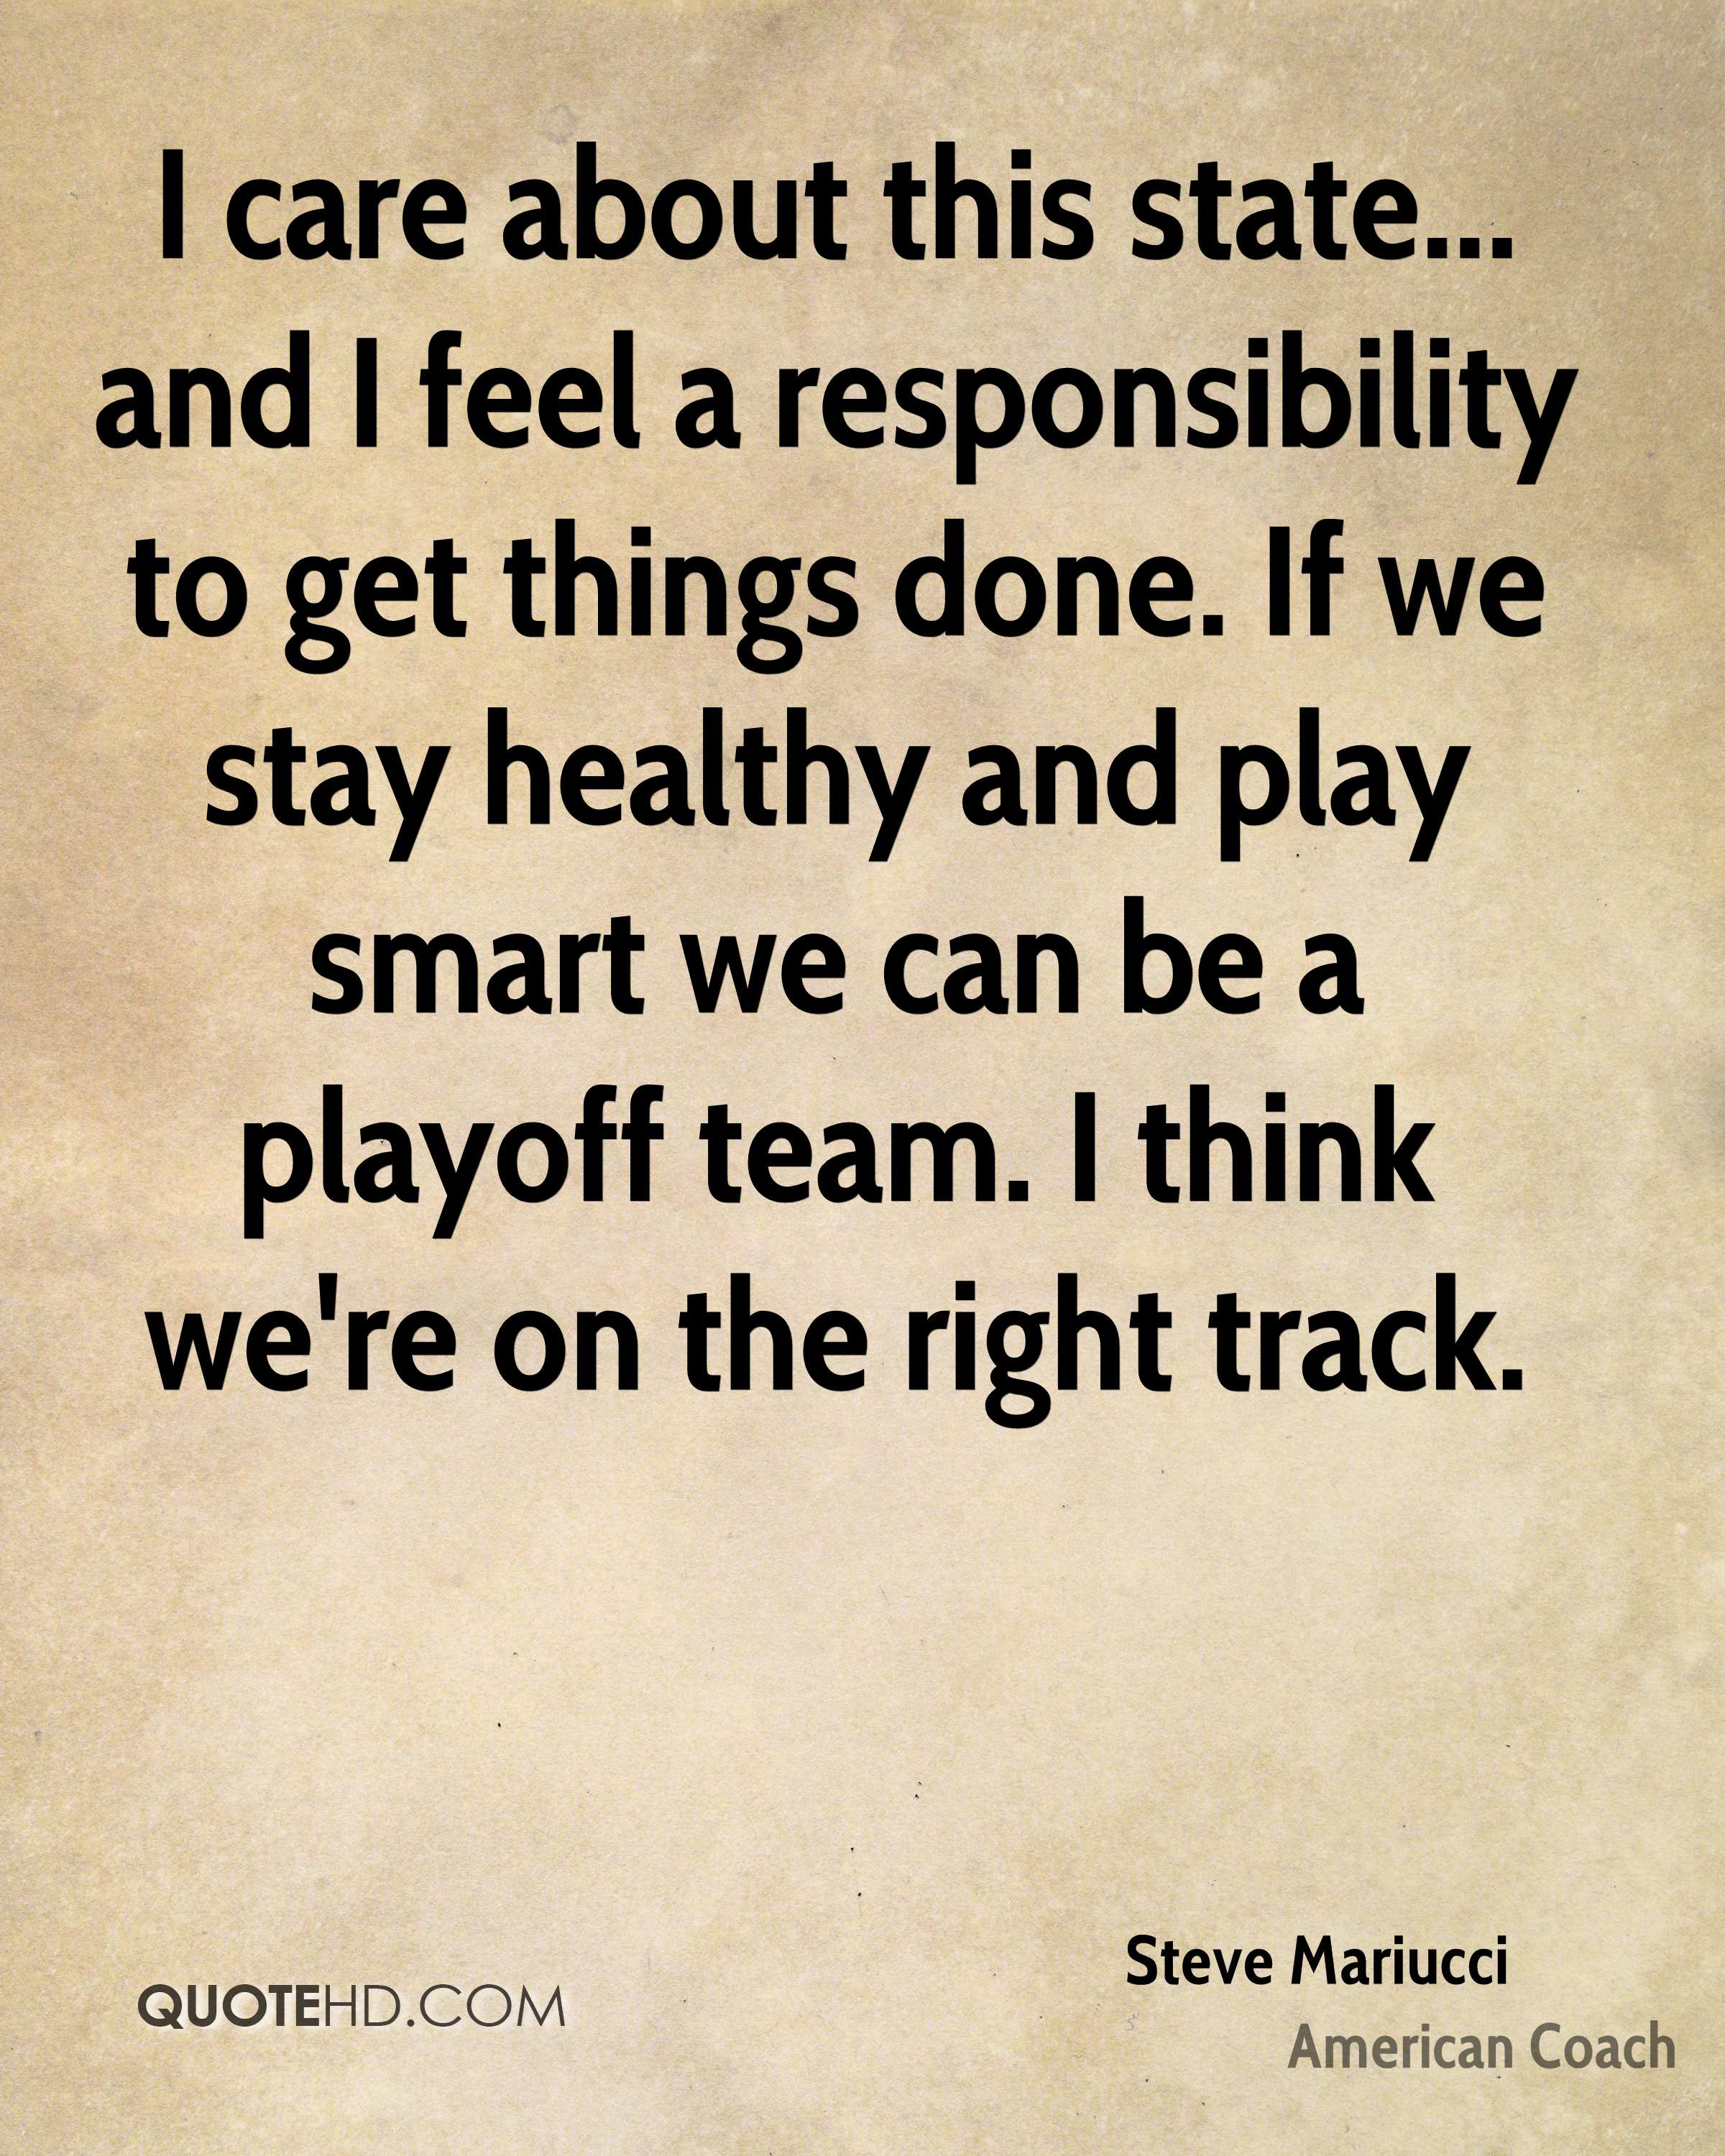 I care about this state... and I feel a responsibility to get things done. If we stay healthy and play smart we can be a playoff team. I think we're on the right track.